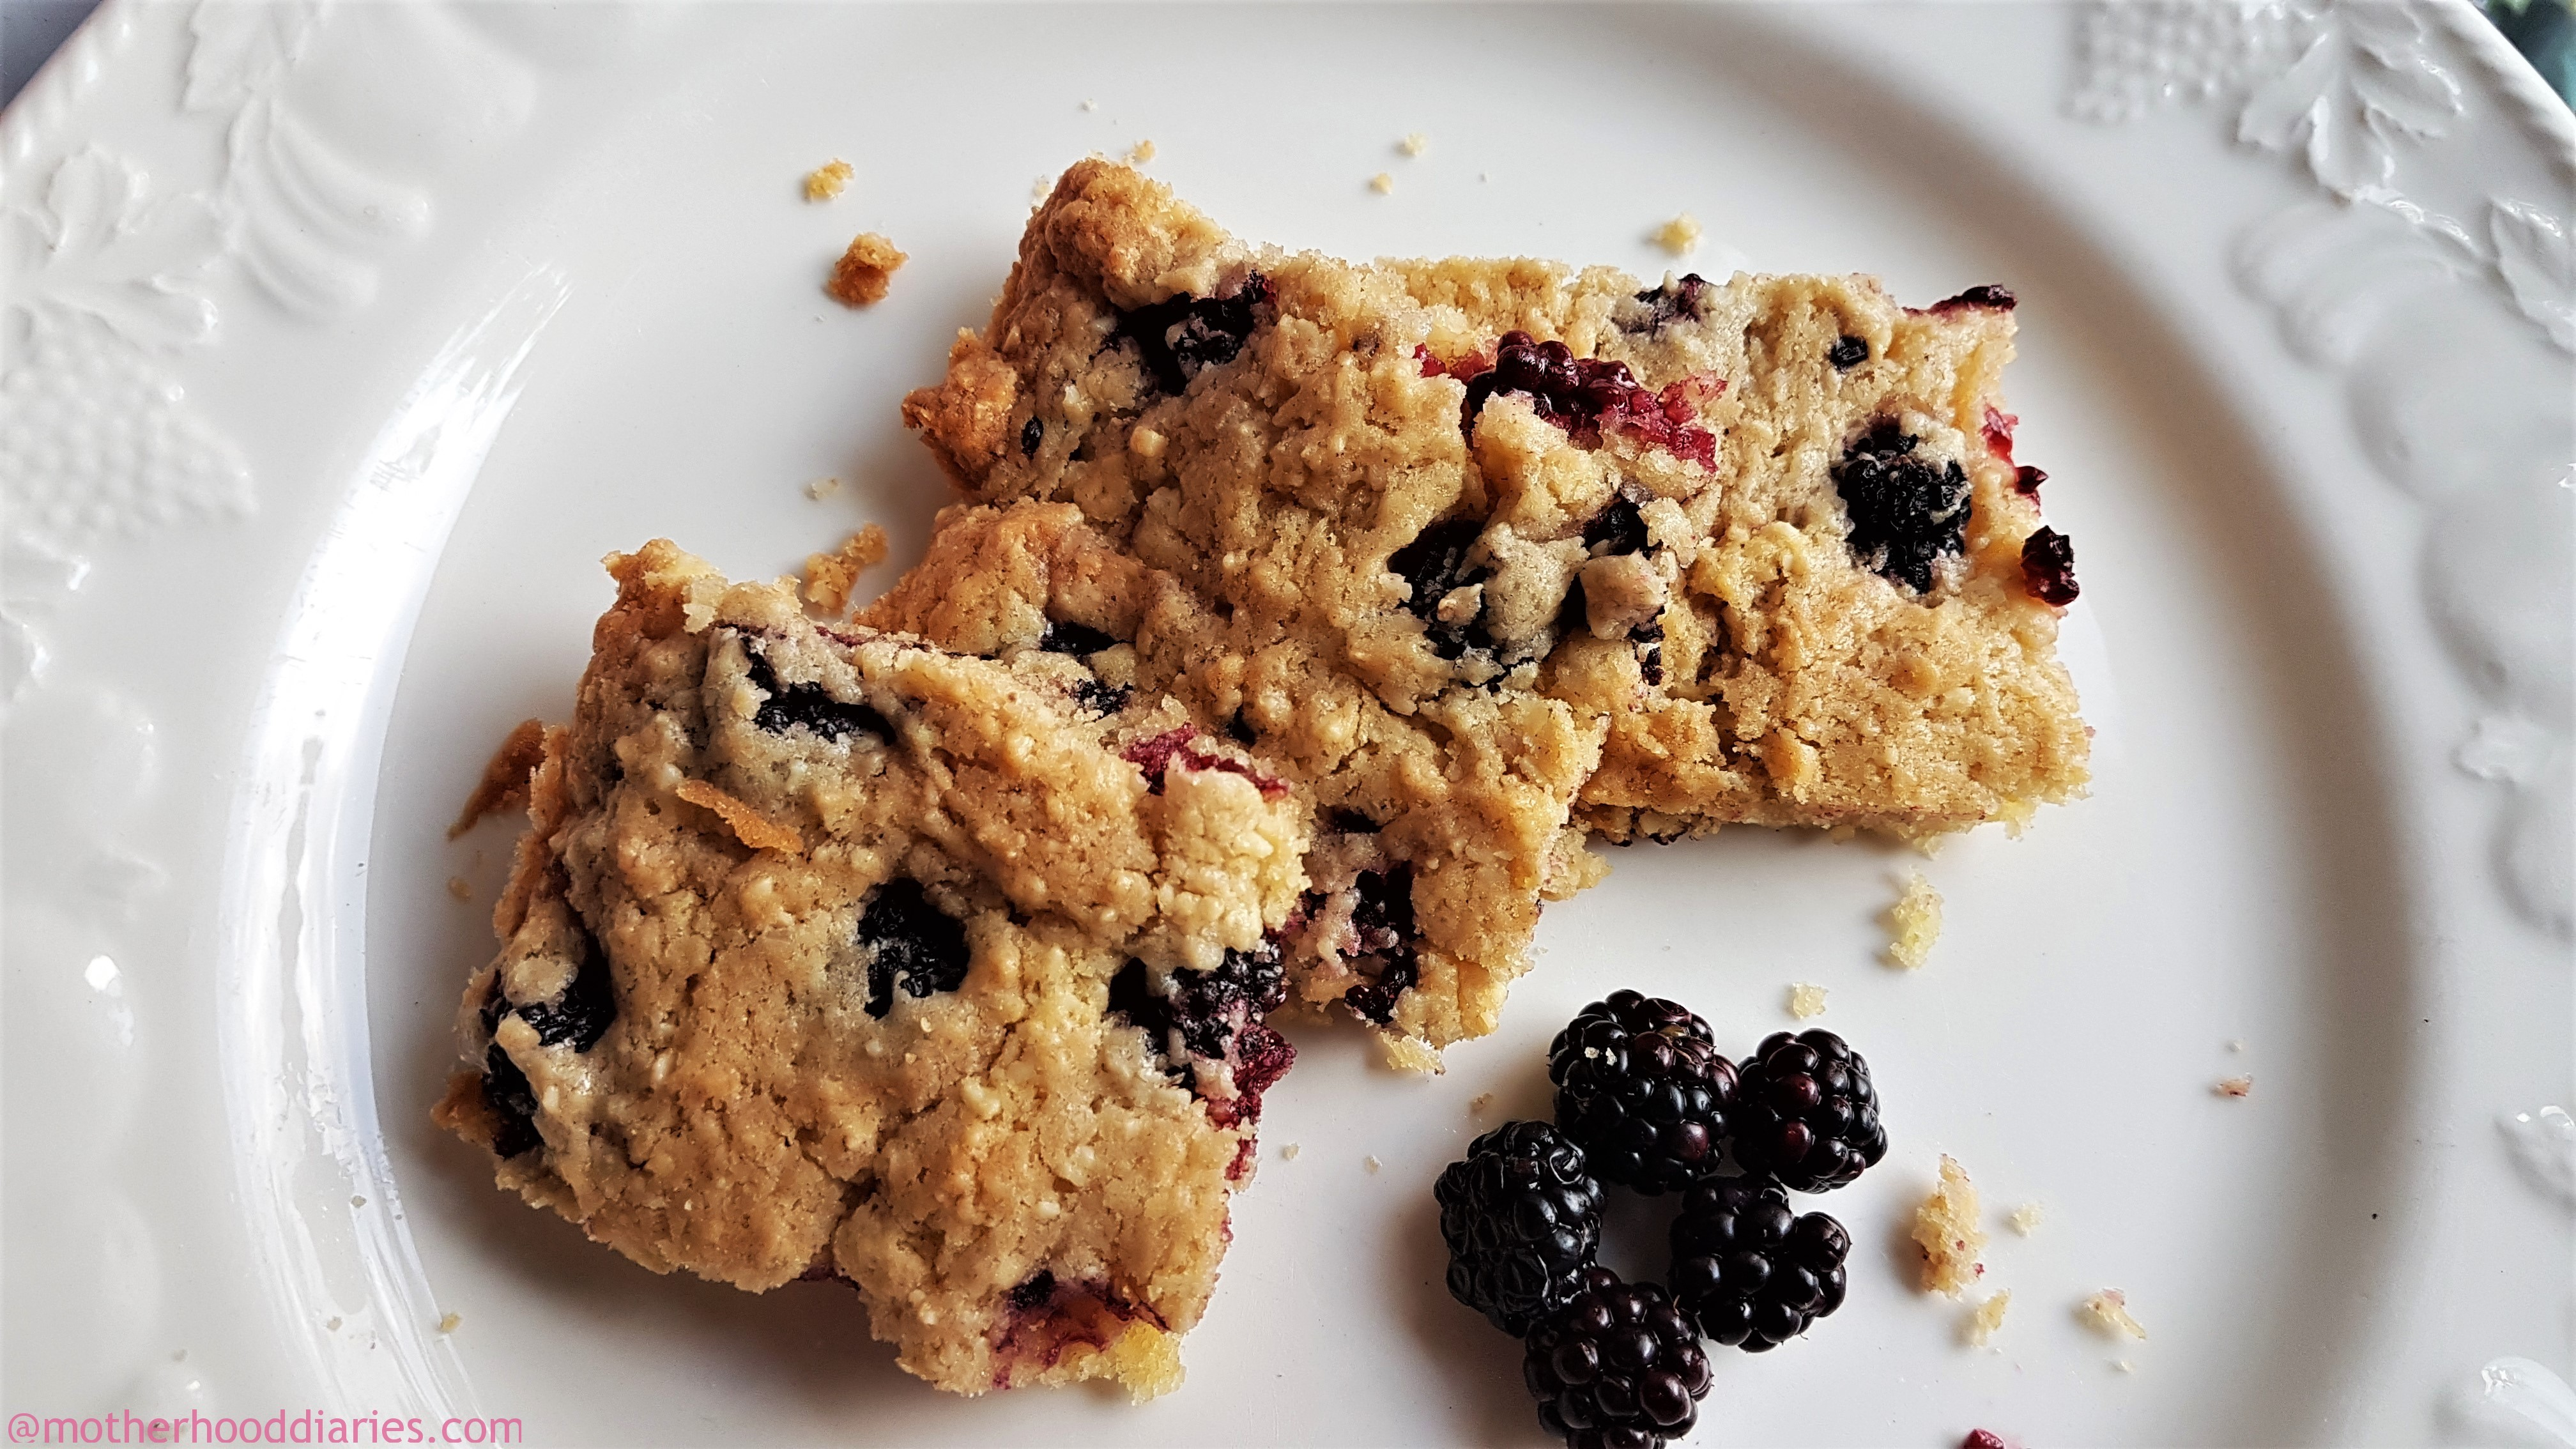 Baking Cocoa, Almond and Raisin Cookies with Clover – Recipe #nothingartificial